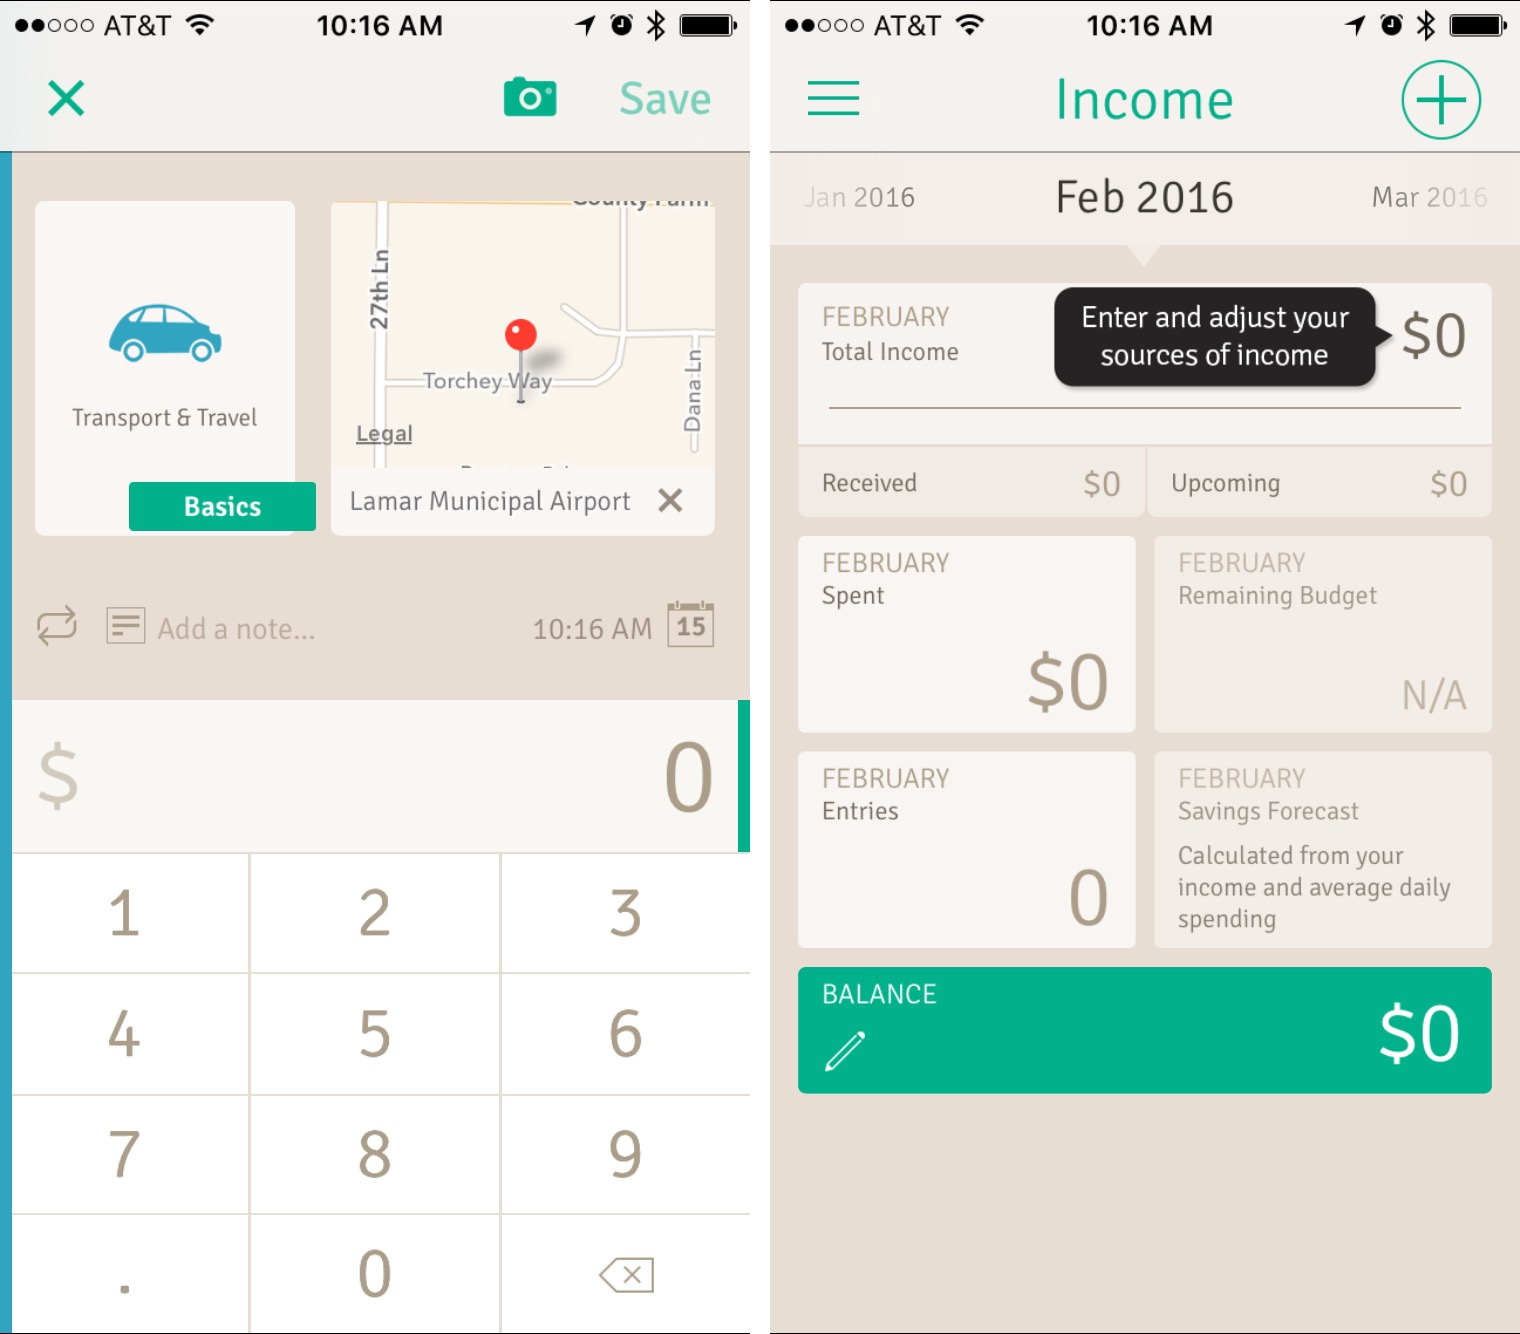 Wally expense and income screens in the mobile app.